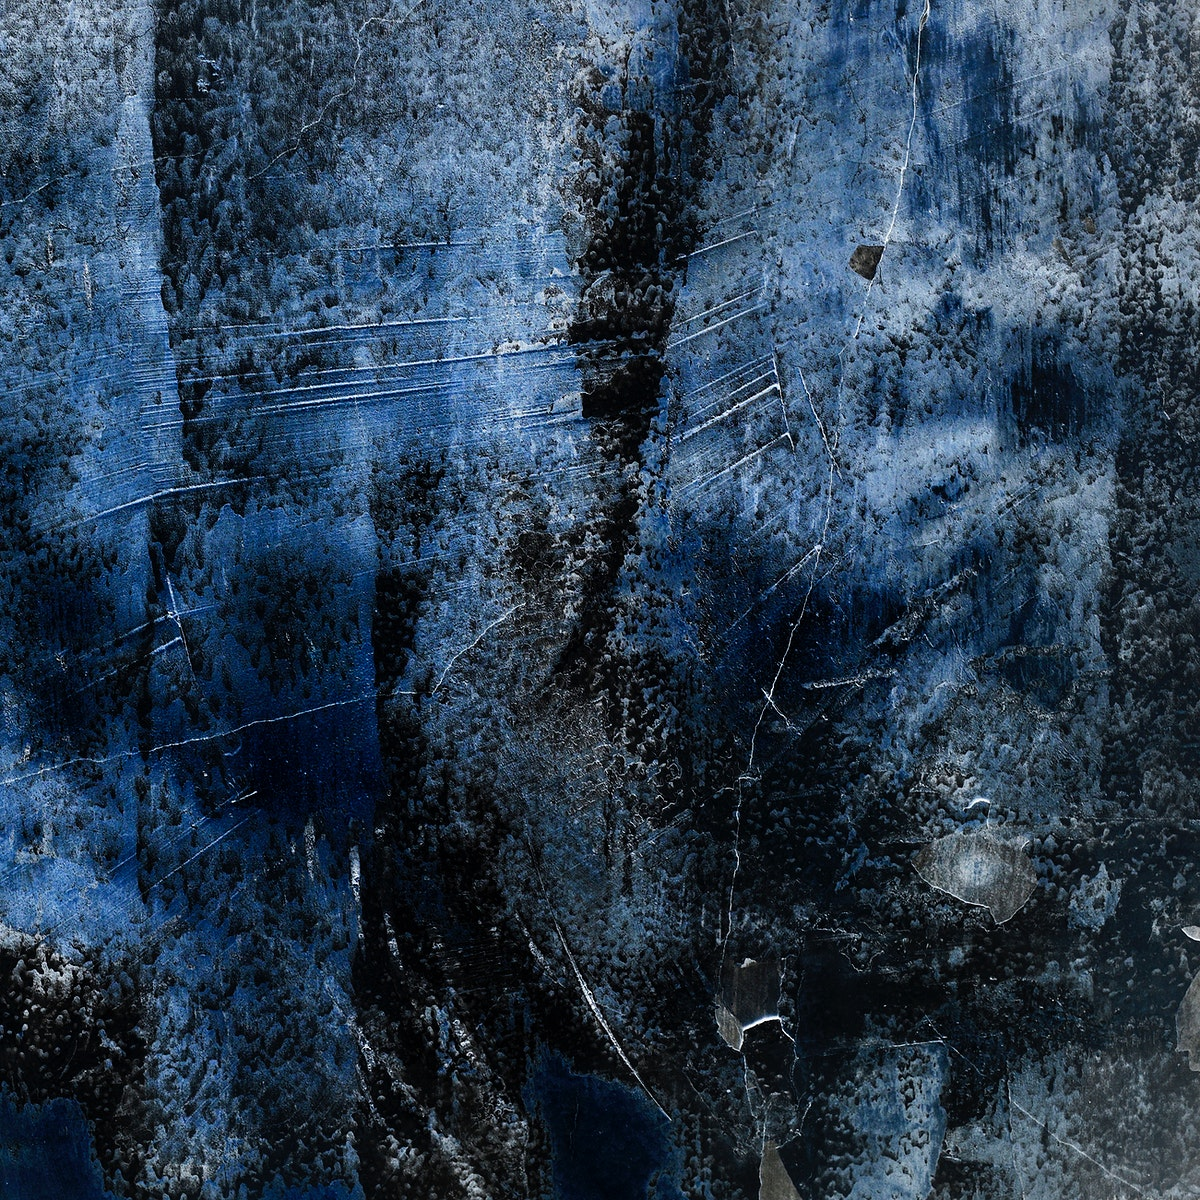 Cracked rustic blue concrete textured background